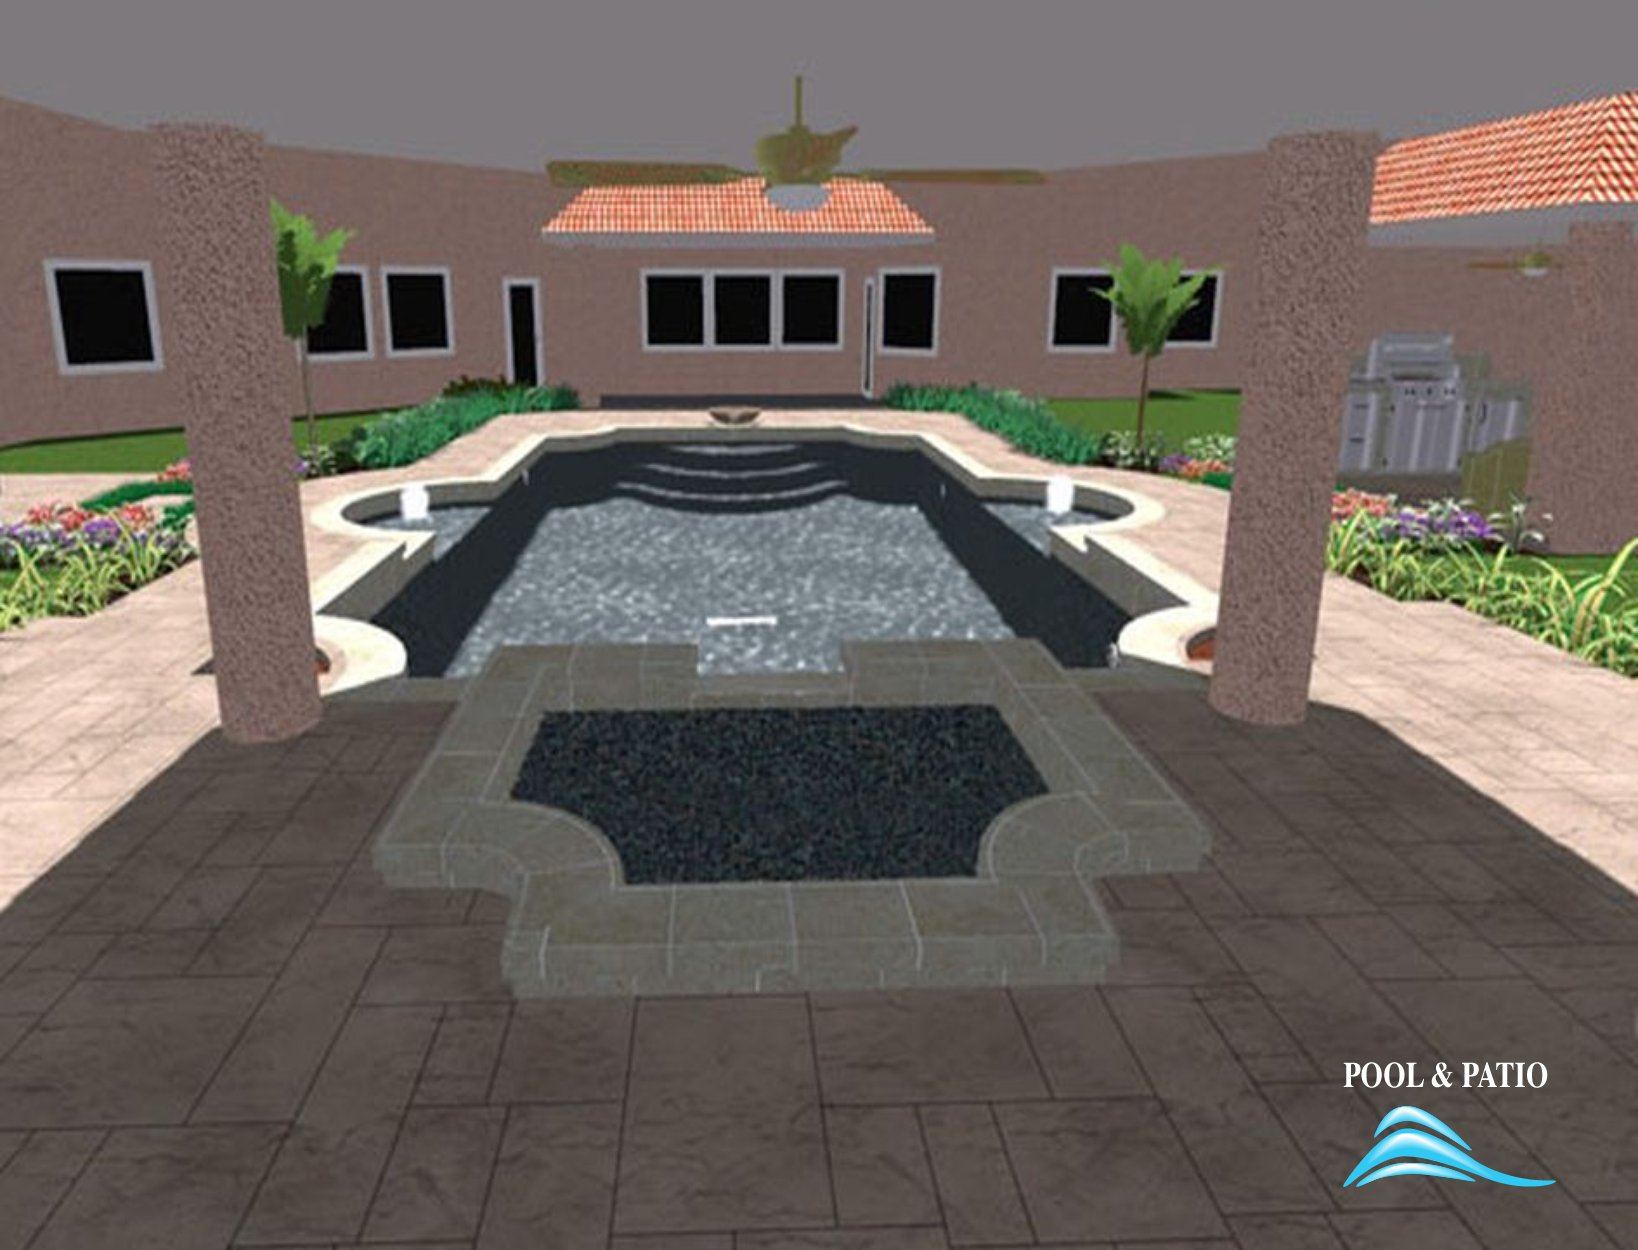 ... Design Service #005 By Pool And Patio ...